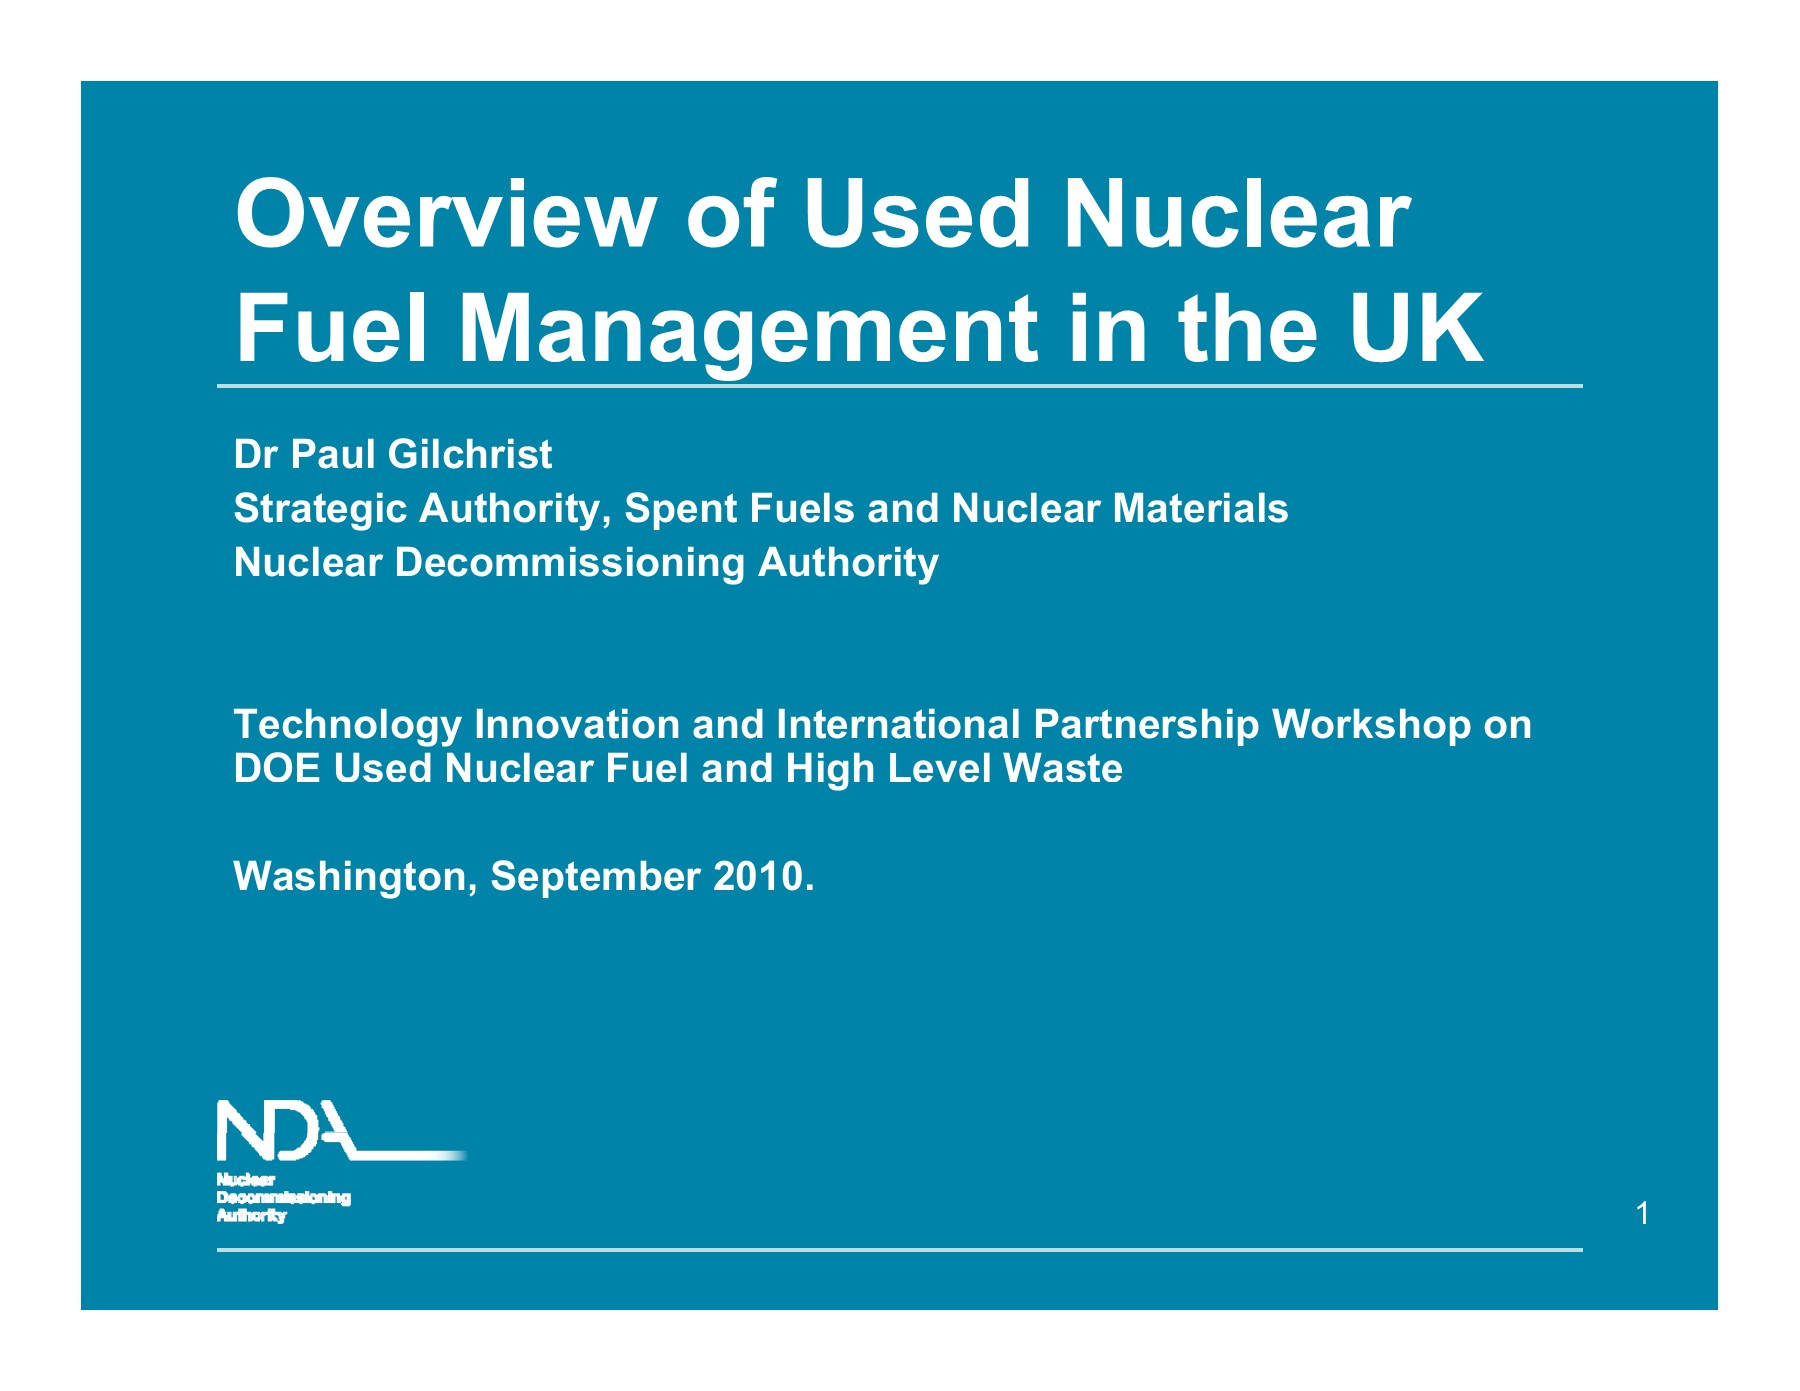 14 Overview of UNF Management in the UK Gilchrist ppt